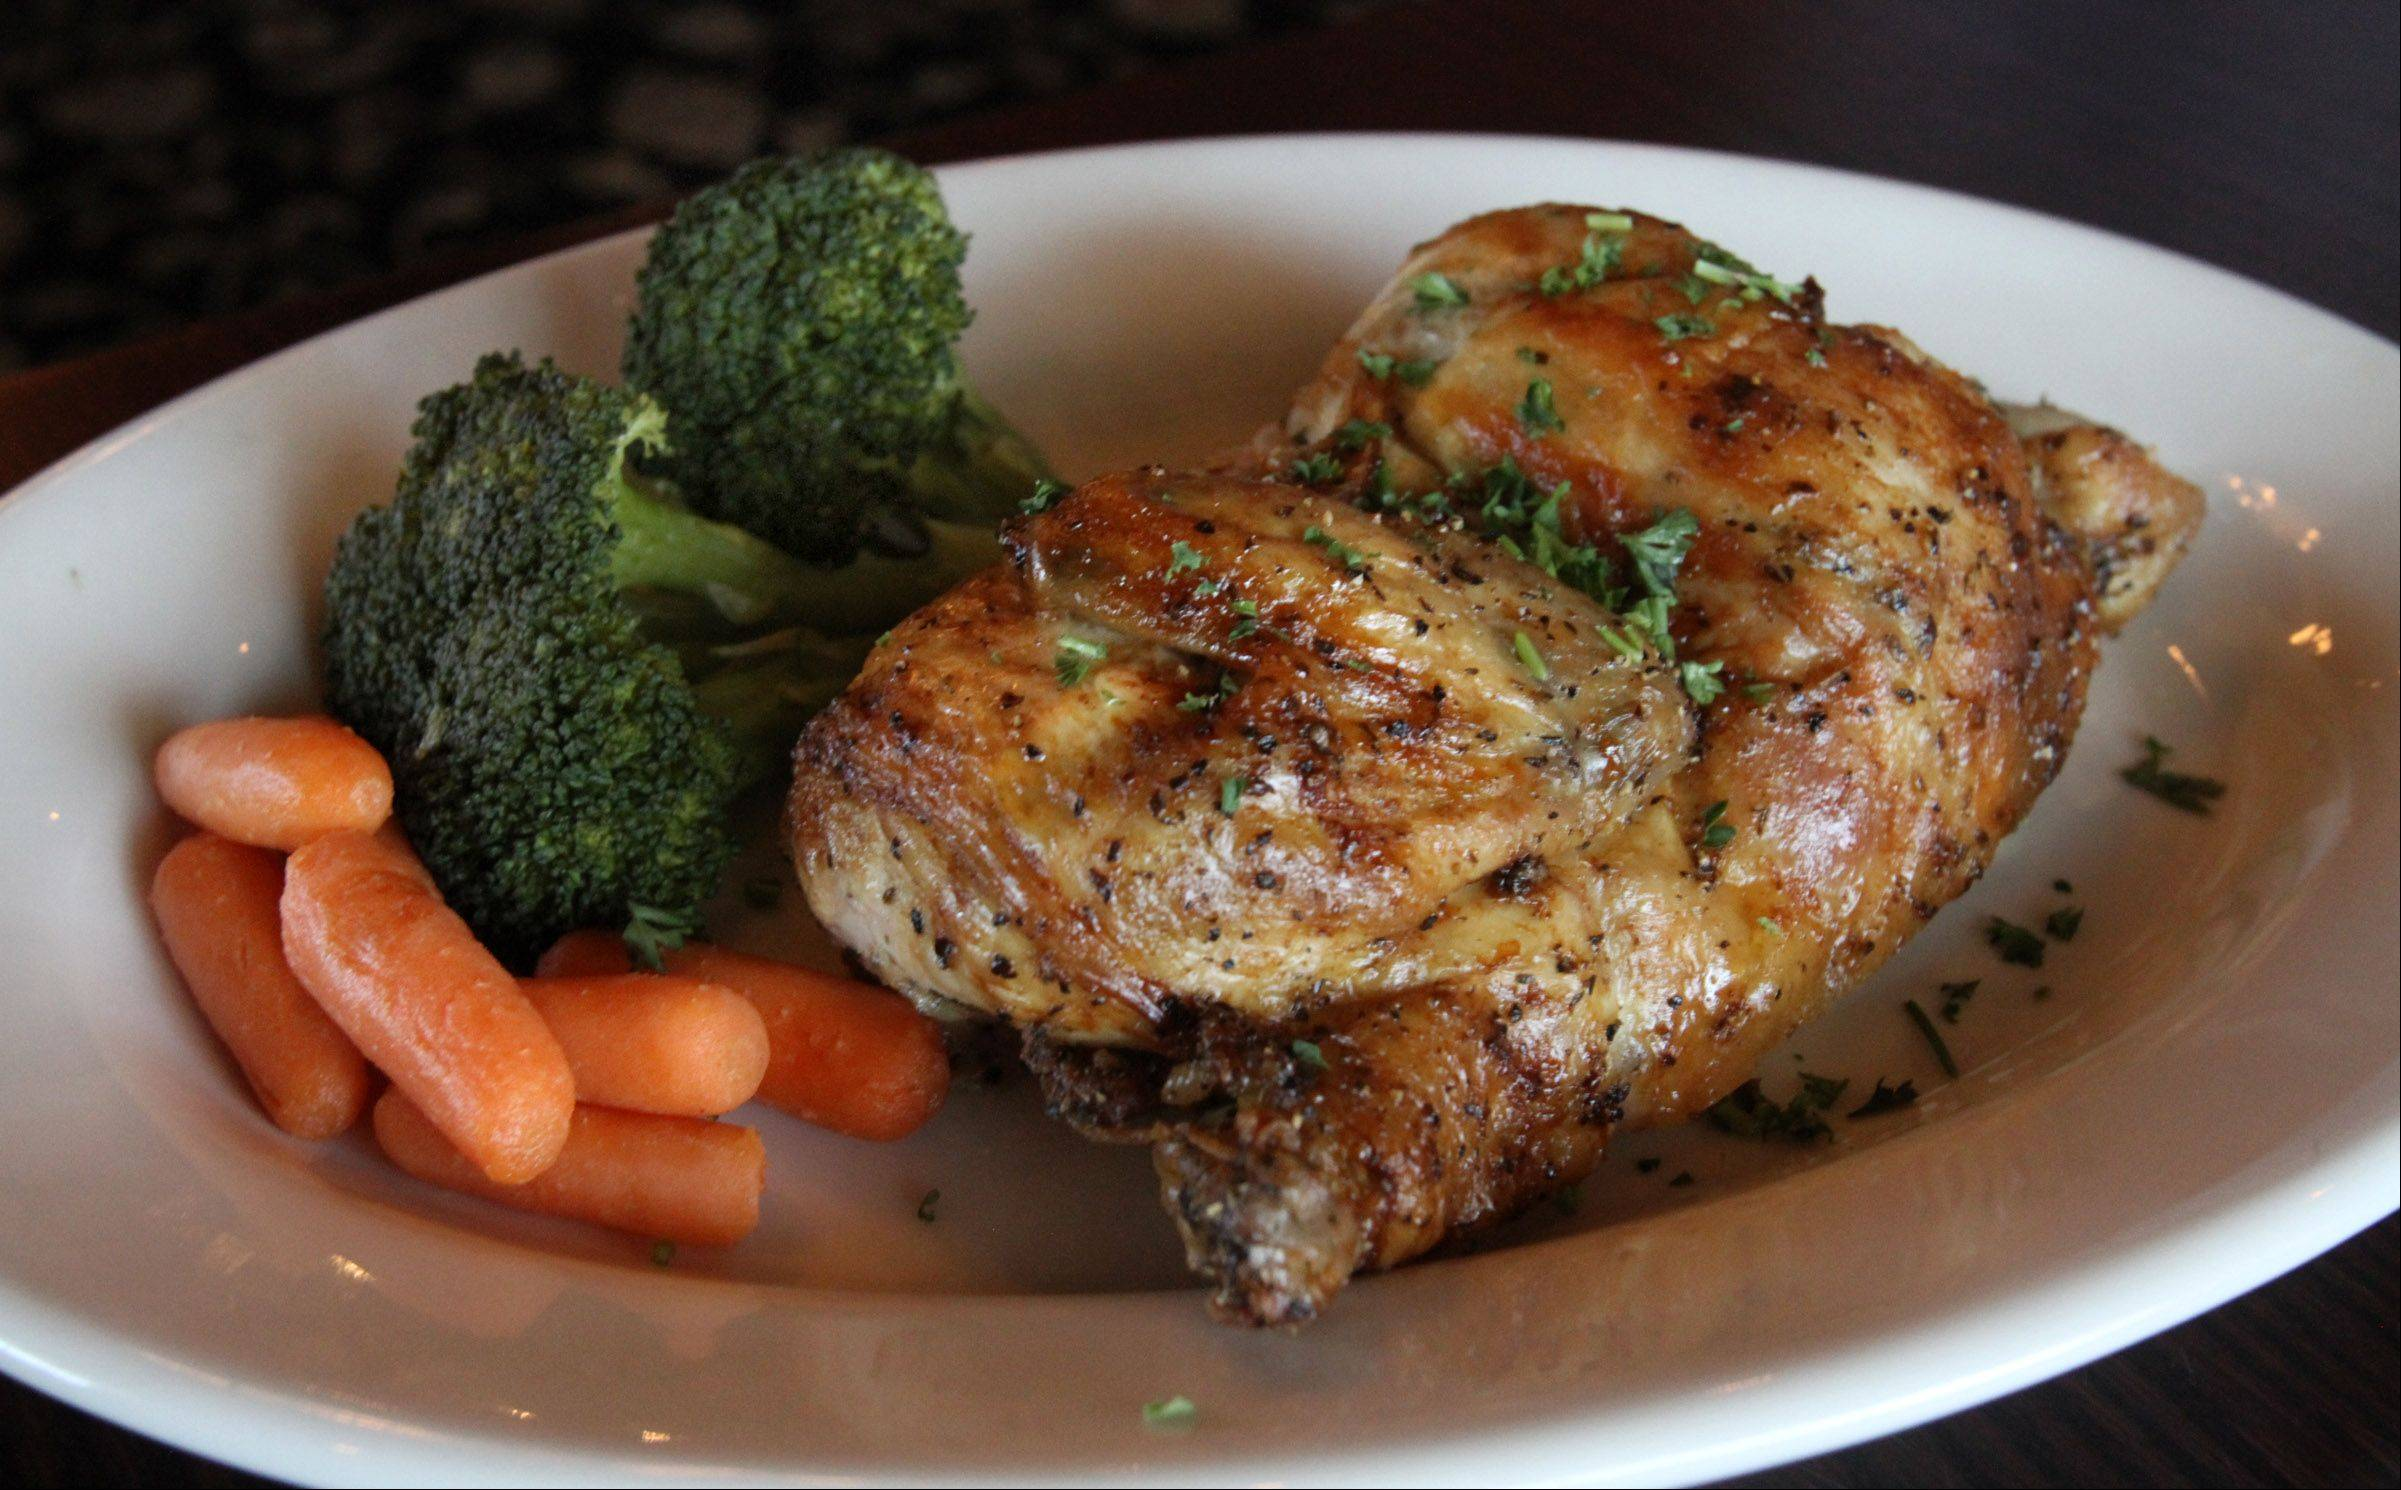 Wood-roasted chicken comes with a choice of potato or fresh vegetables at Black Cow Kitchen & Bar in Mount Prospect.